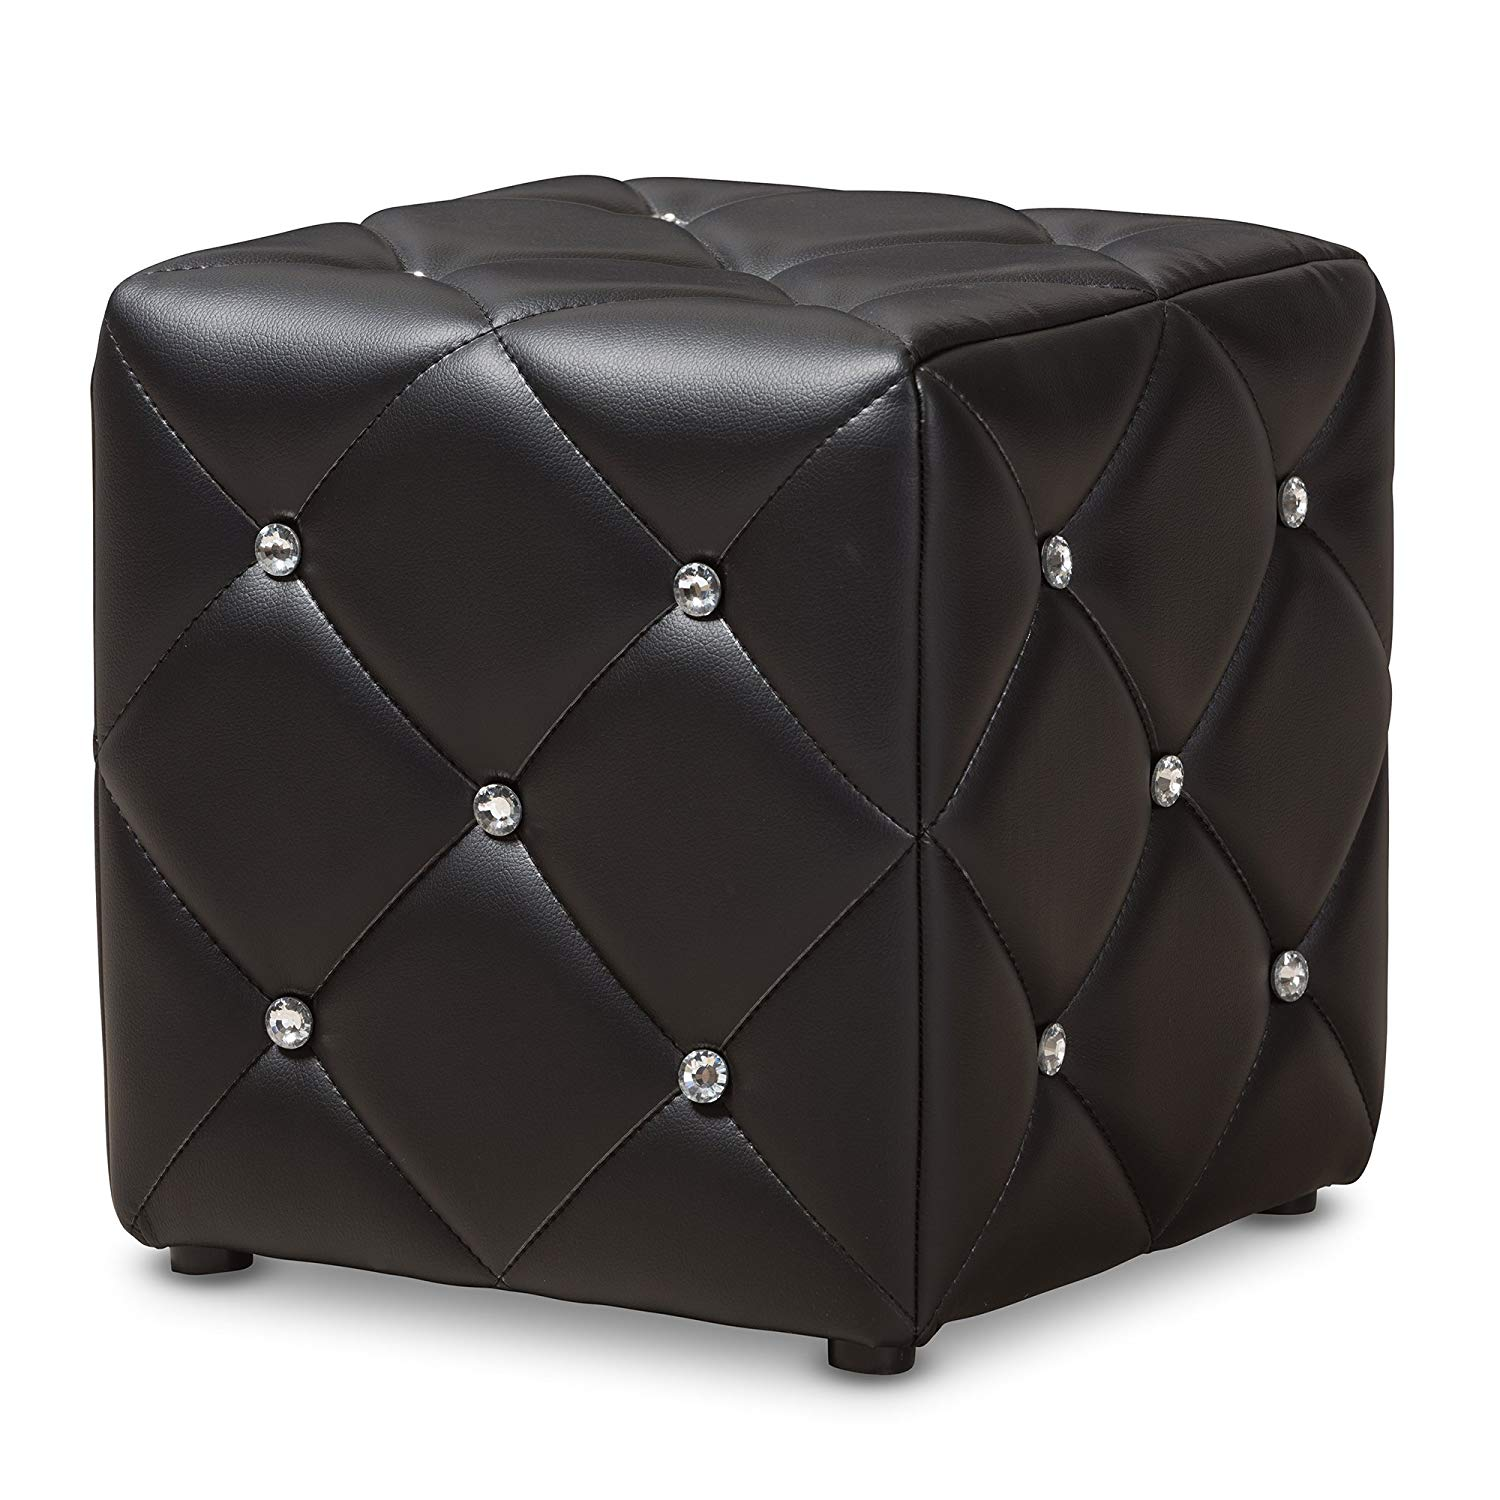 Baxton Studio Stacey Modern and Contemporary Black Faux Leather Upholstered Ottoman/Contemporary/Black/Faux Leather/Eucalyptus Wood/HDF/Foam